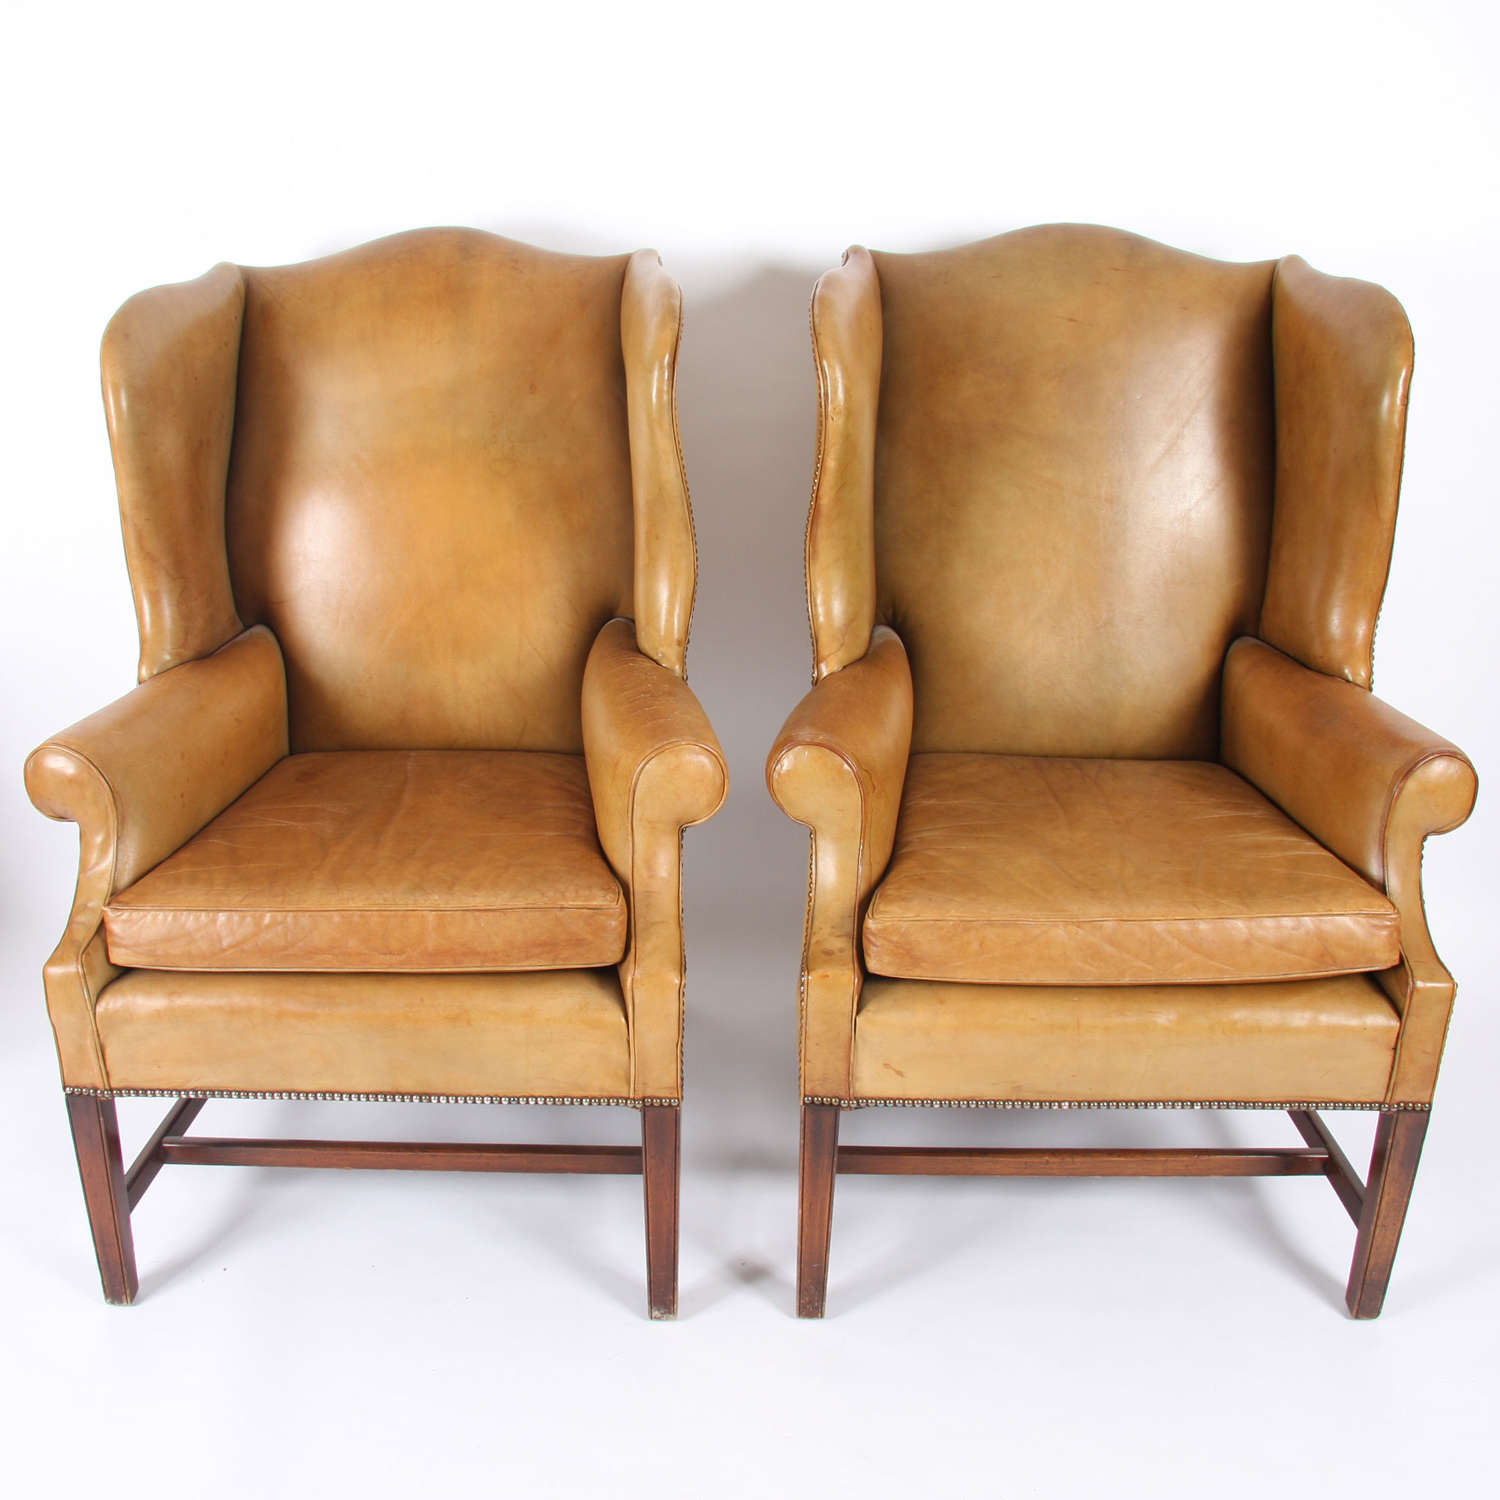 Pair of English Mid-Twentieth Century Leather Armchairs